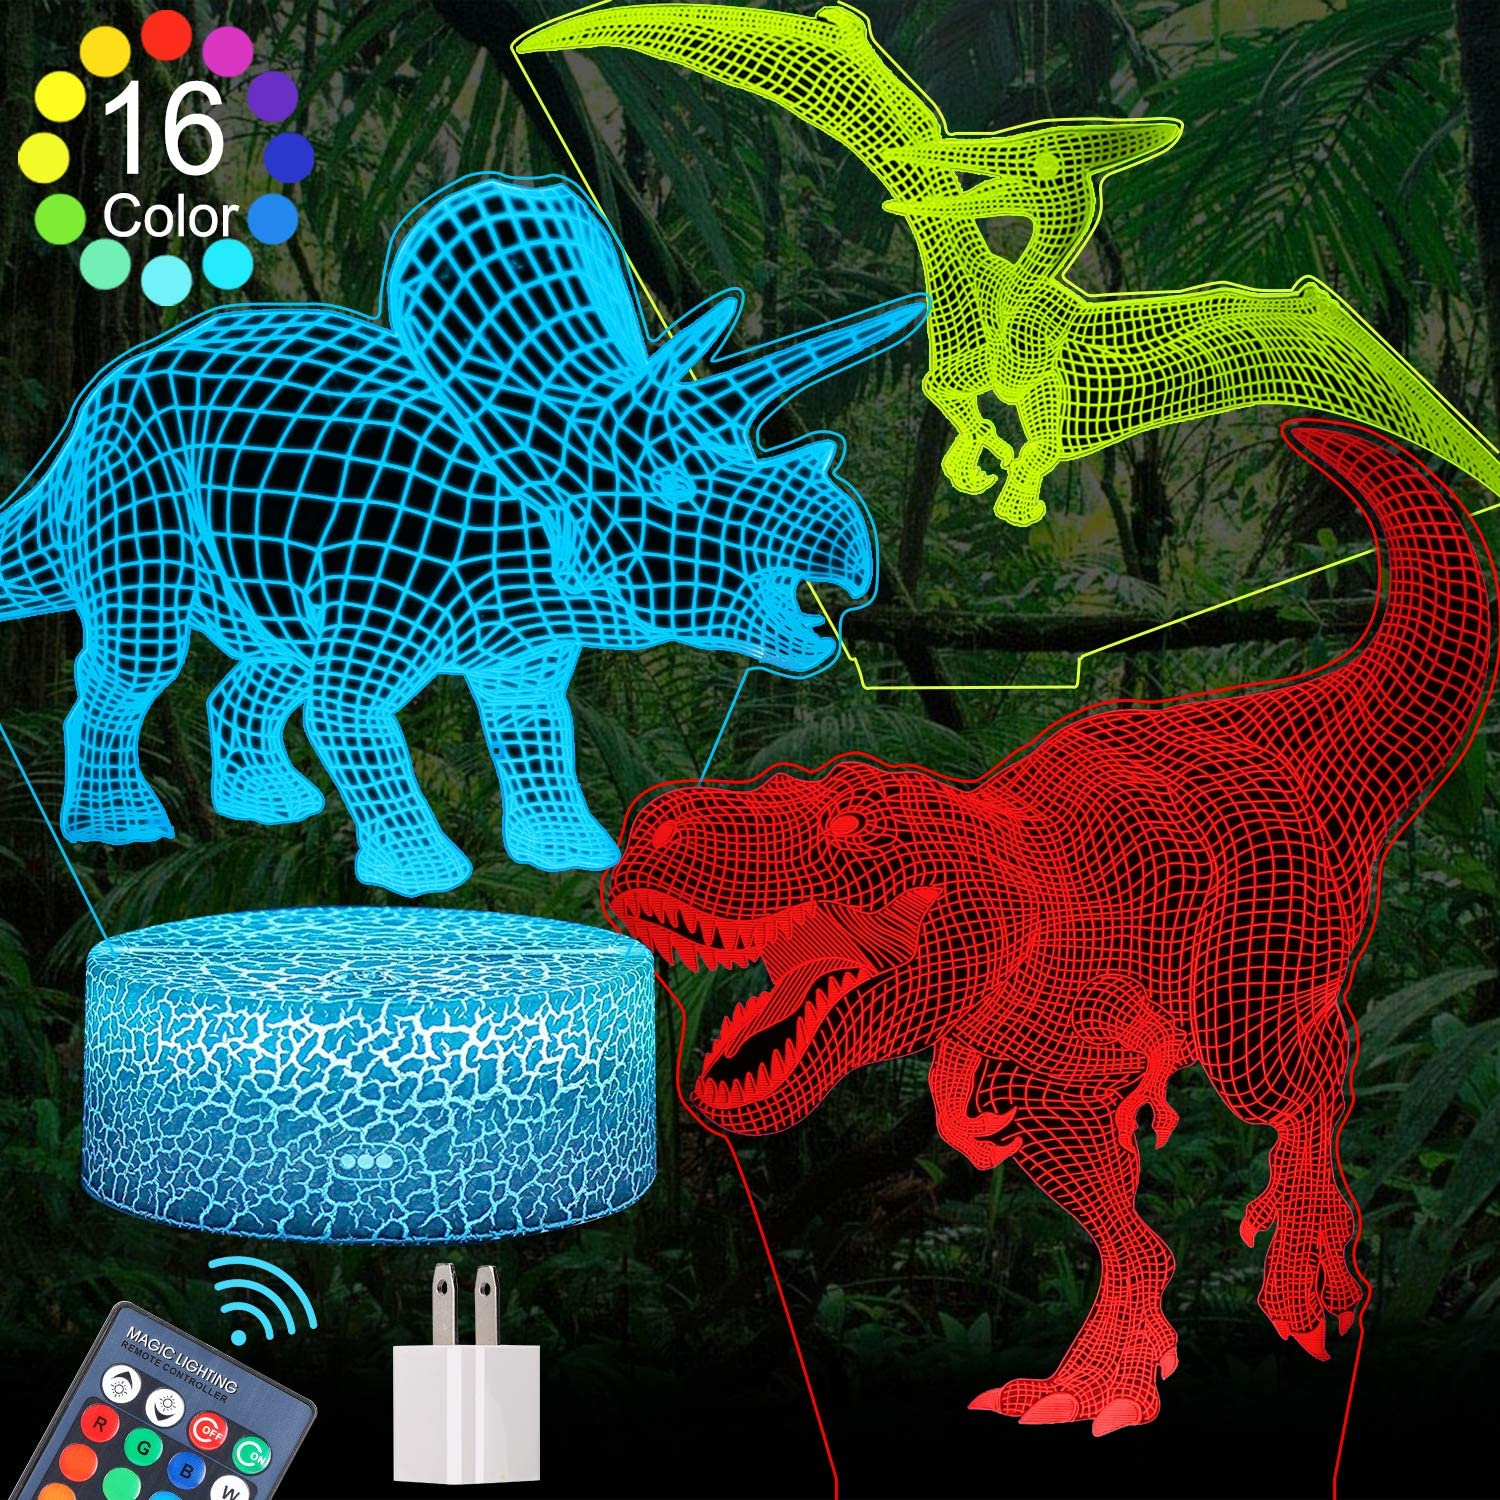 FEOAMO 3D Dinosaur Night Light for Boys, 16-Colors and 3-Pattern with Remote Control, Dino Night Light, 3D Illusion Toy Lamp Nightlight, Gift for Boys Aged 4 5 6 7 8